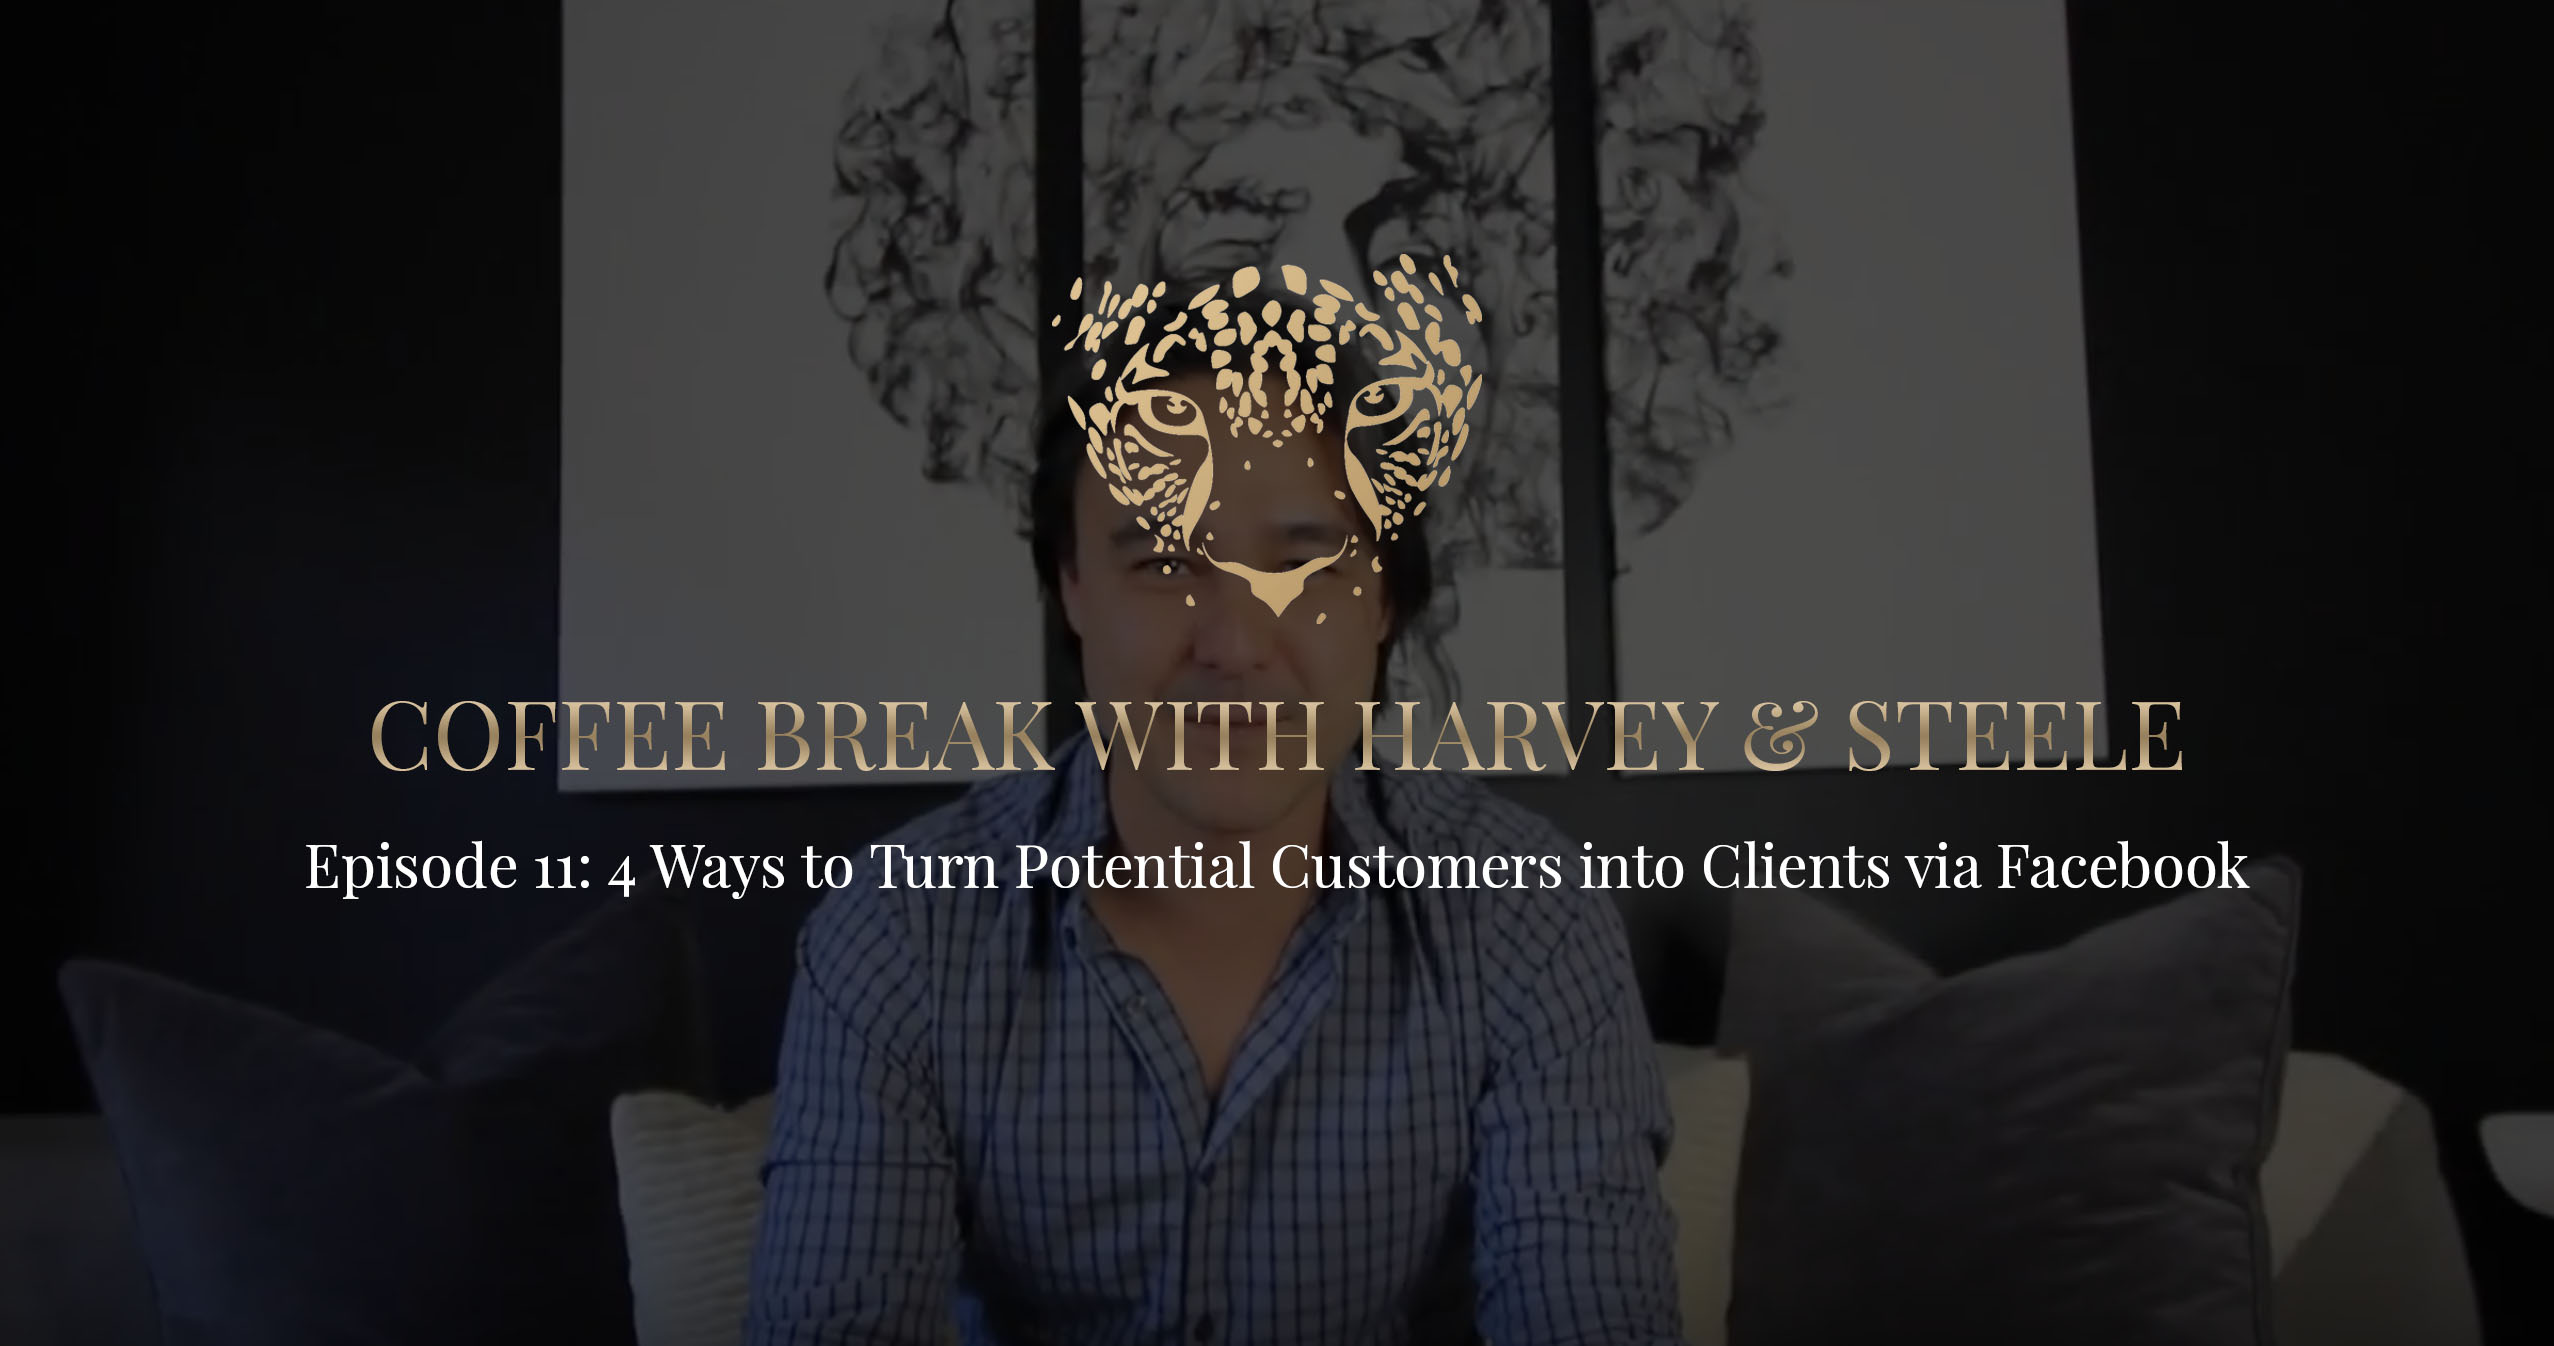 4 Ways to Turn Potential Customers into Clients via Facebook